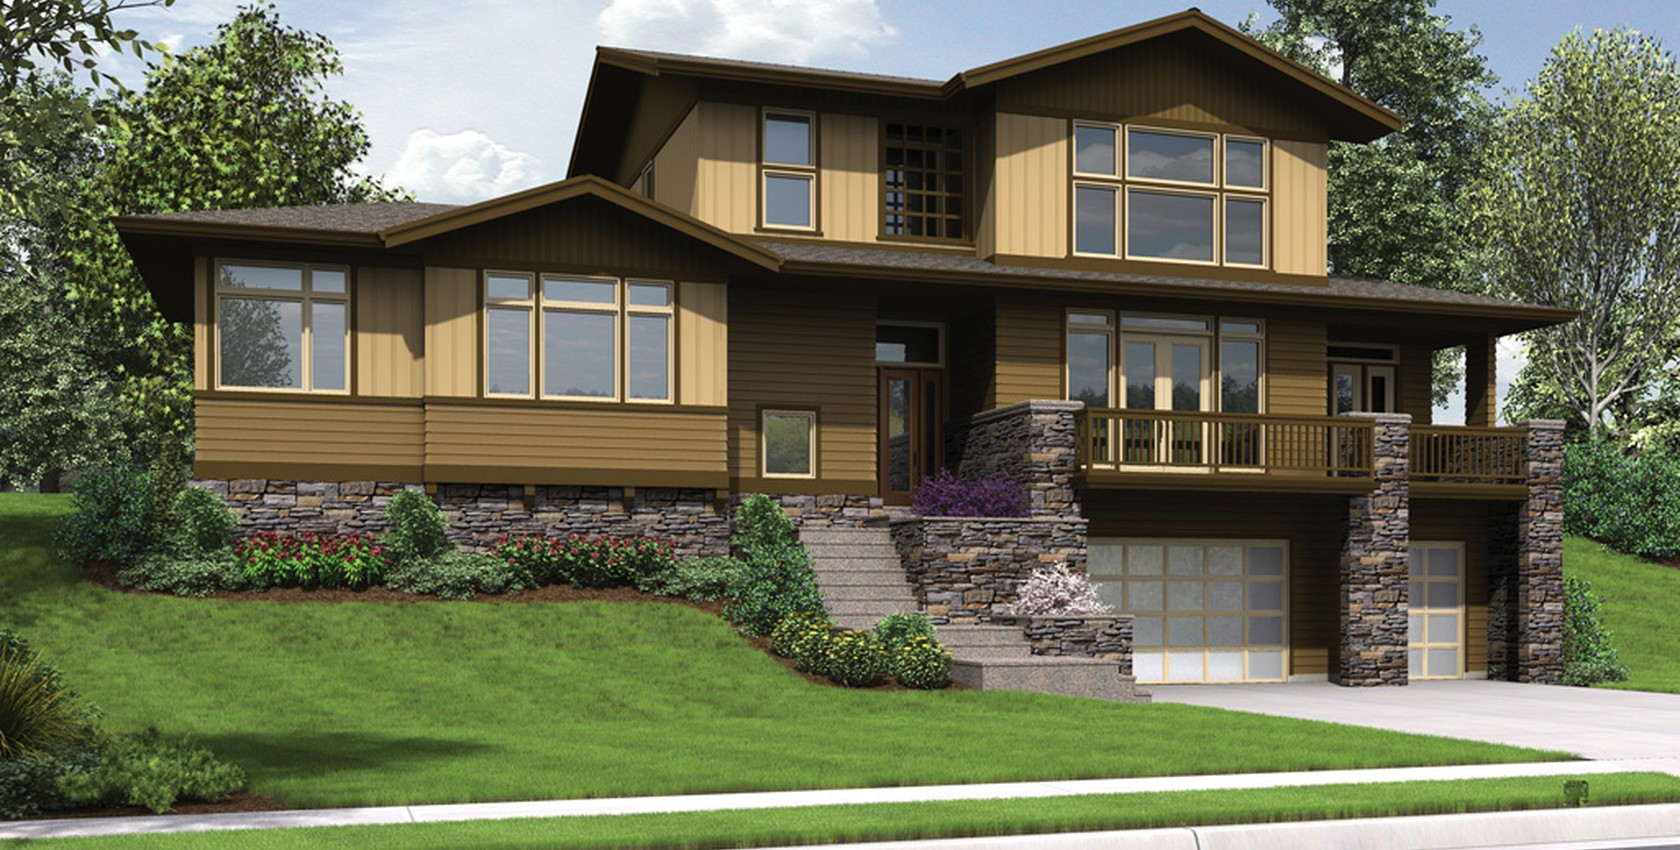 Image for Renicker-Delightful Craftsman for Uphill Sloping Lots-6016